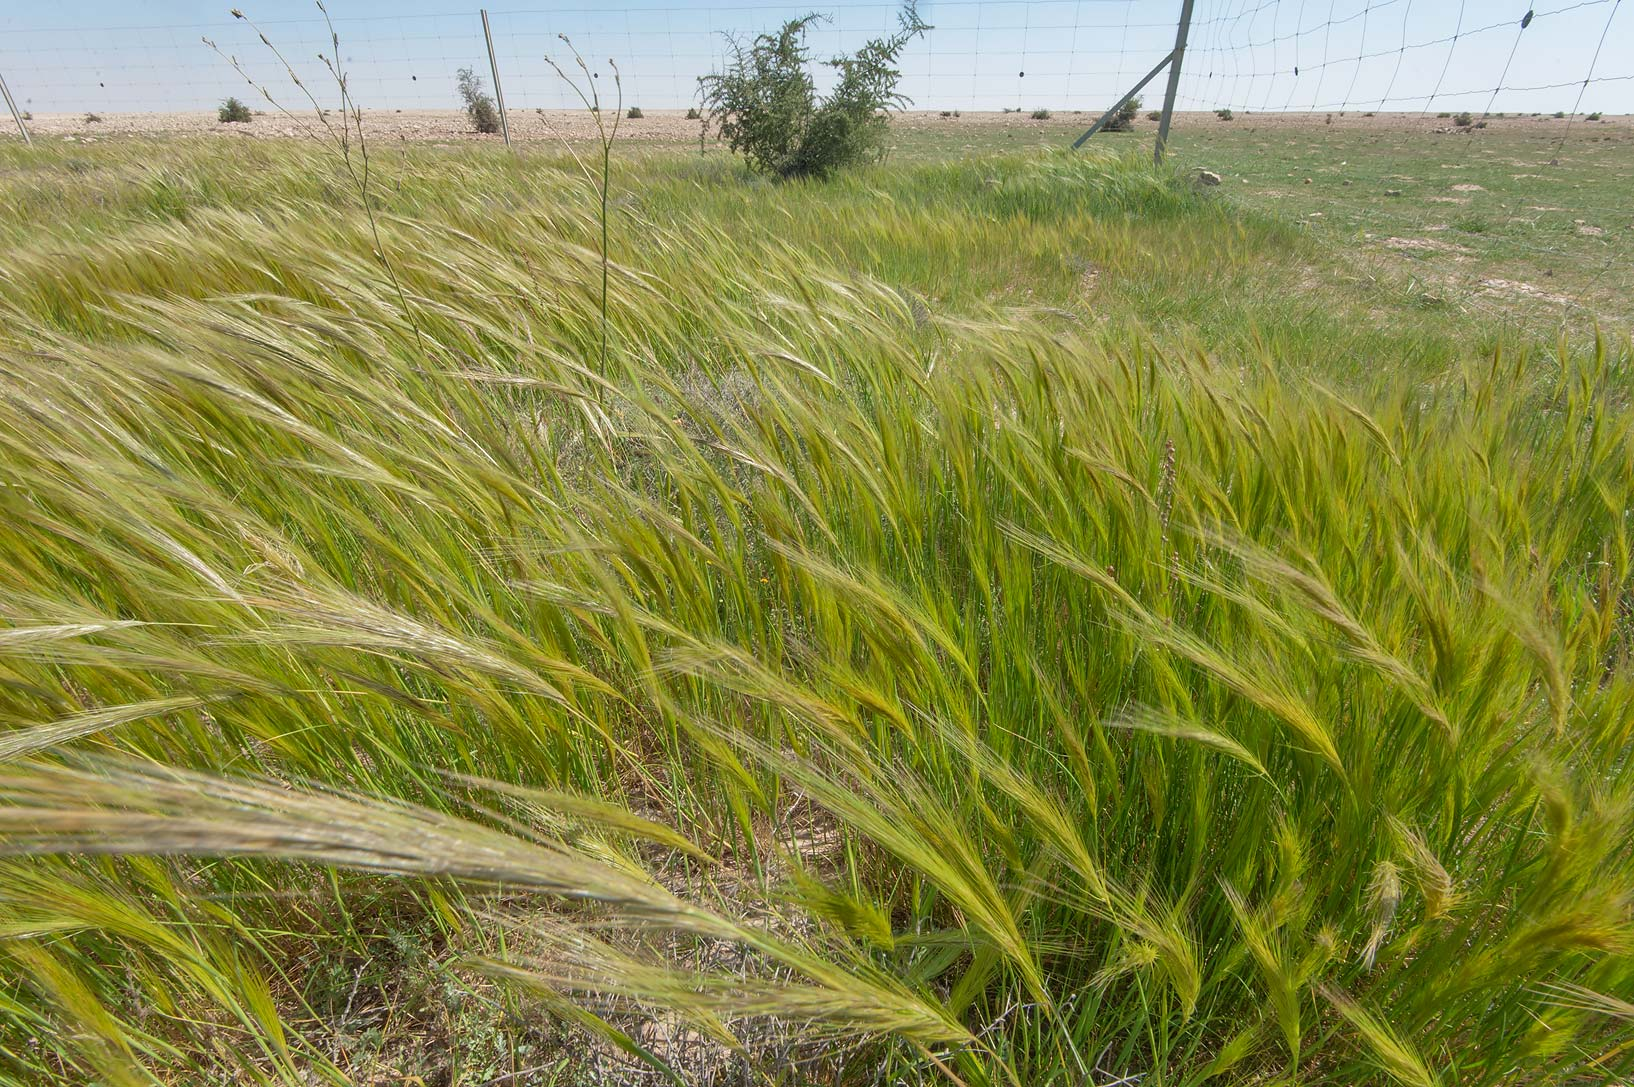 Wide angle view of a field of spear grass (Stipa...depression of Khawzan Rd.. Qatar